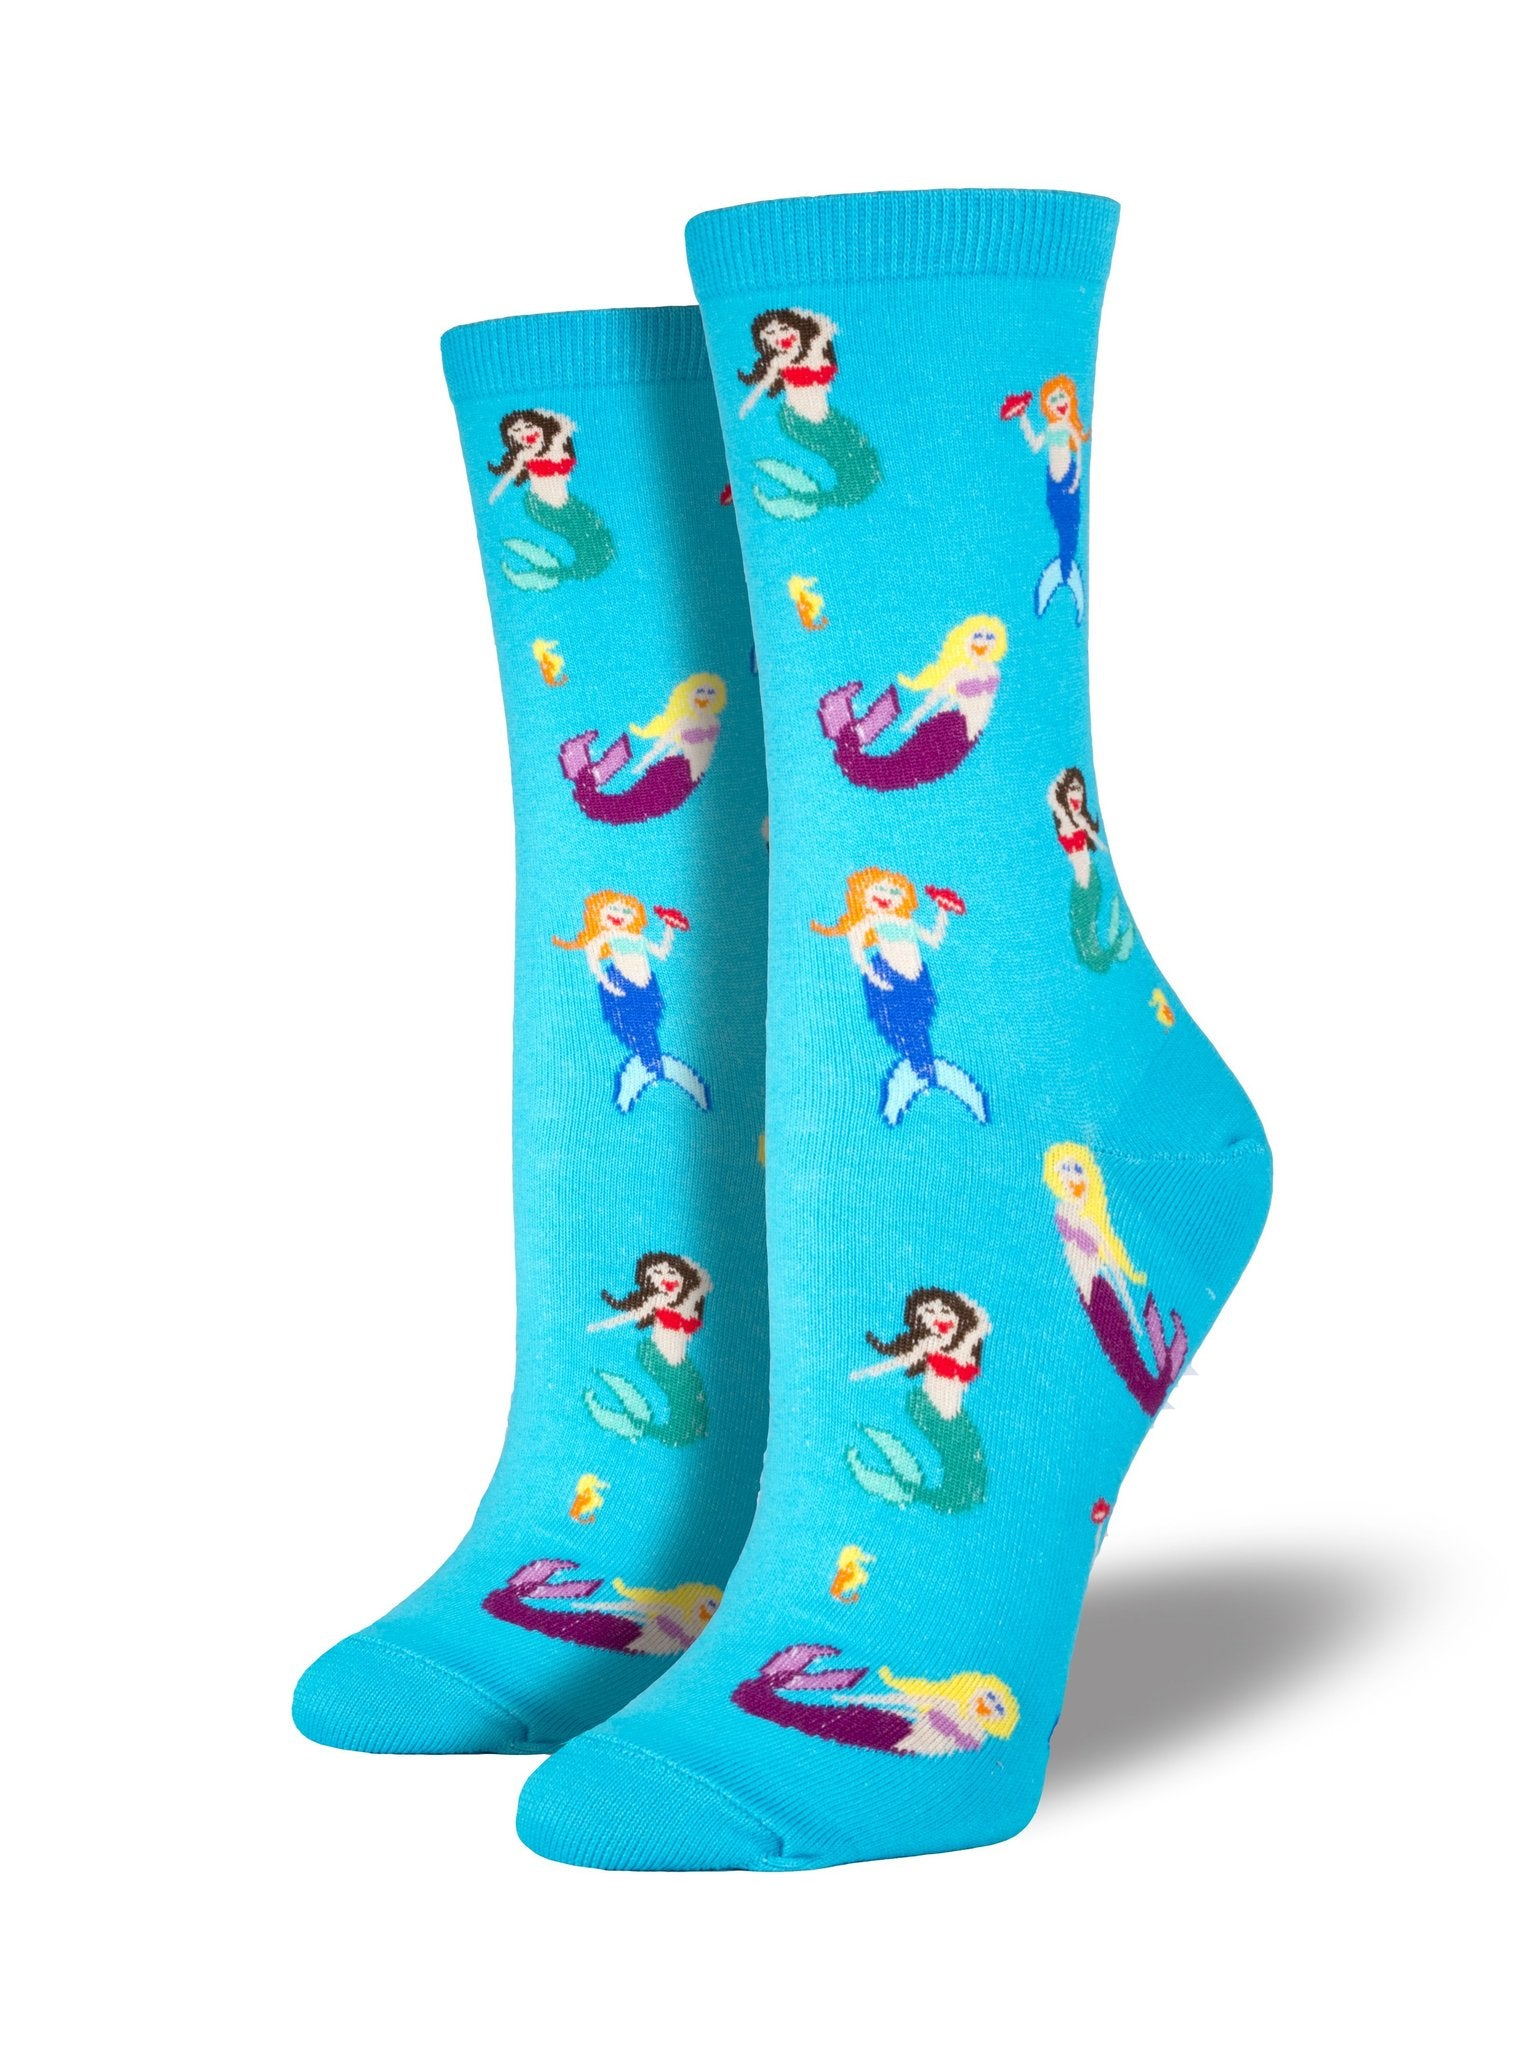 Many Mermaids Women's Socks